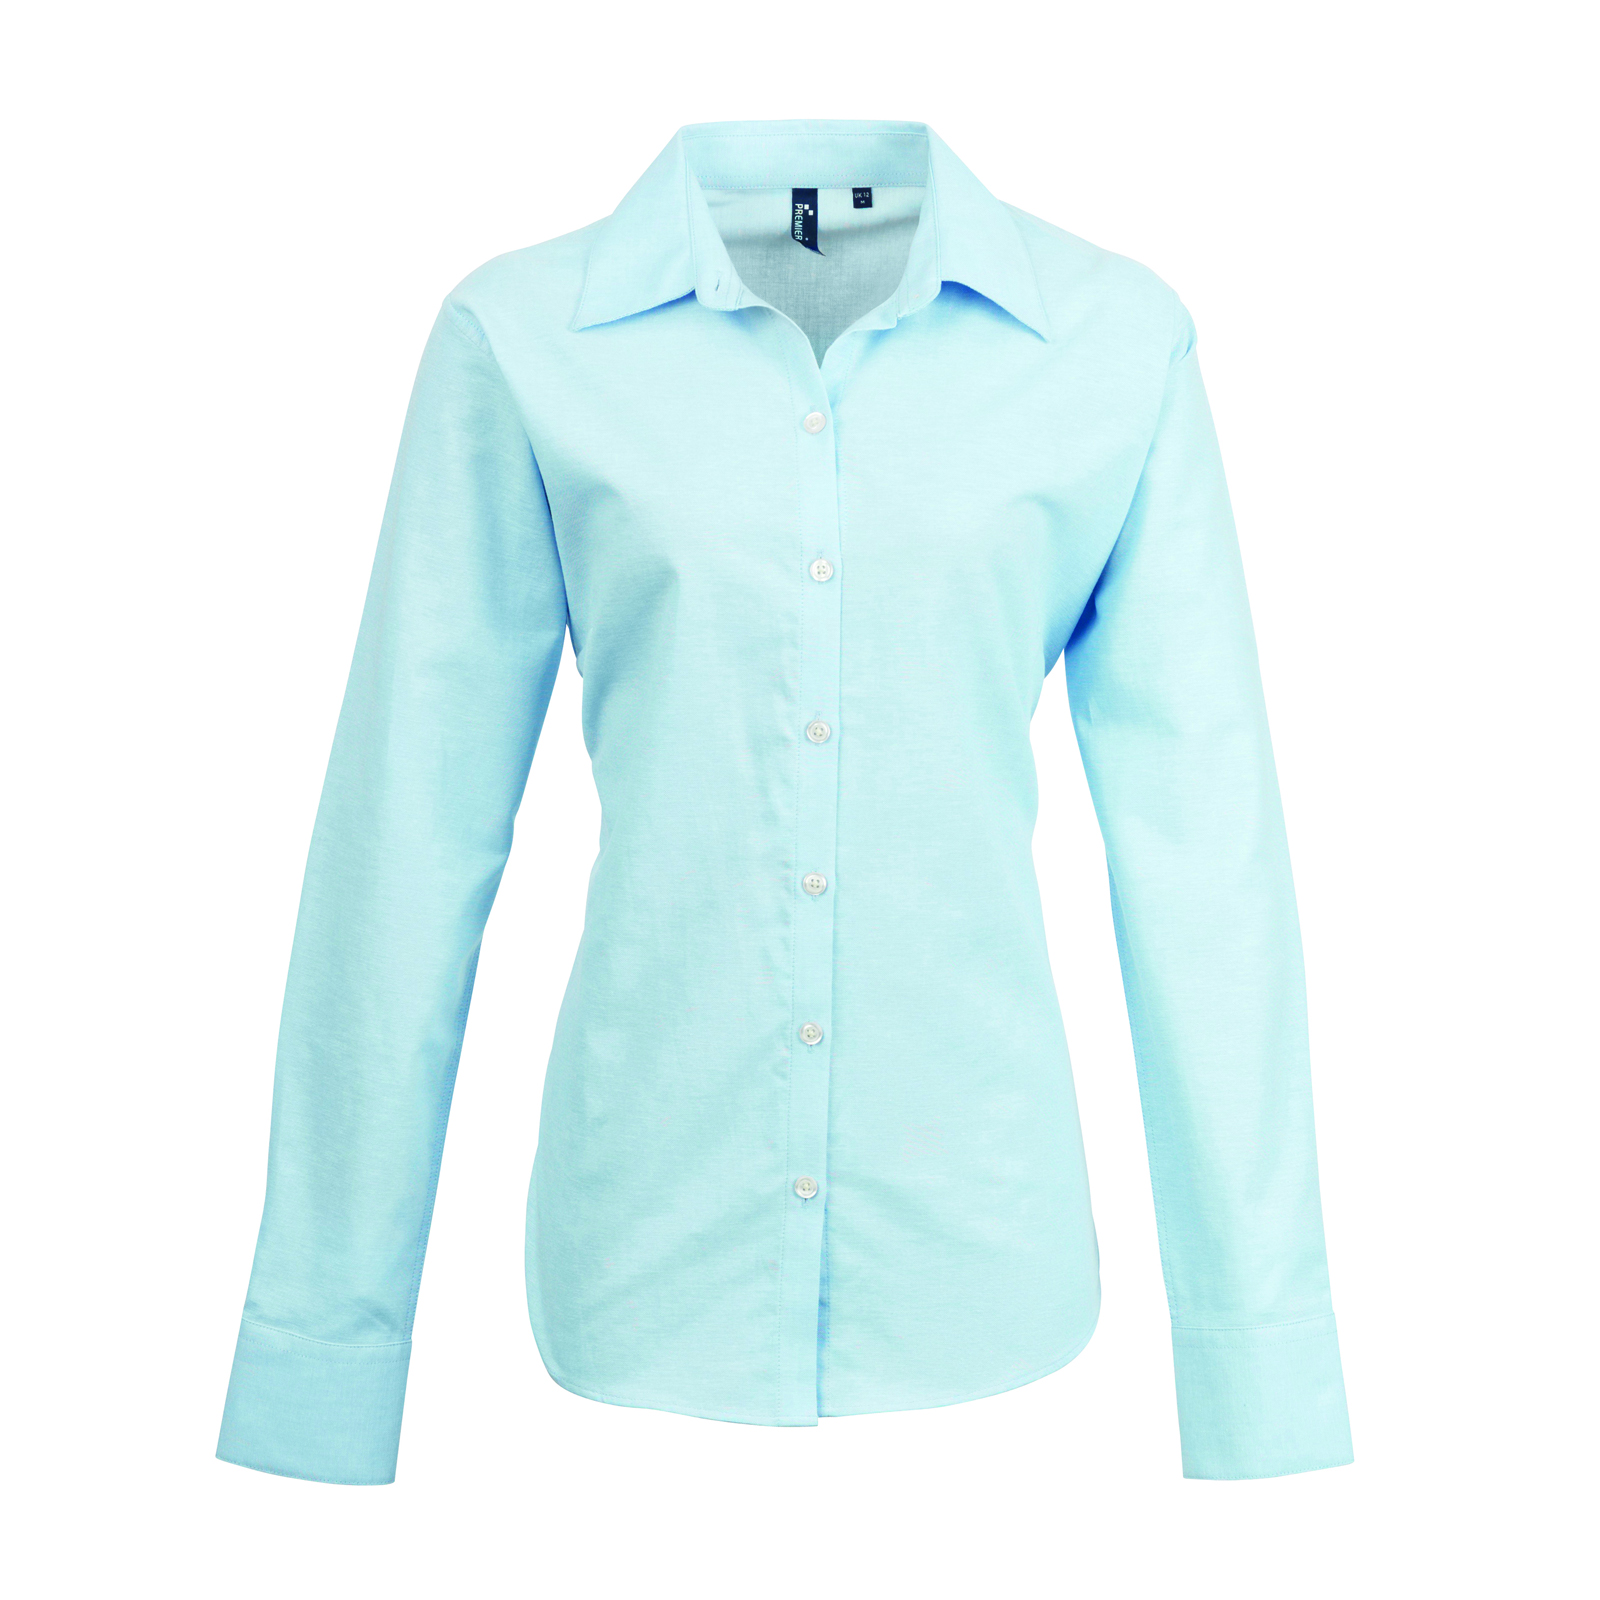 3bb8f39d55 Womens Light Blue Cotton Blouse